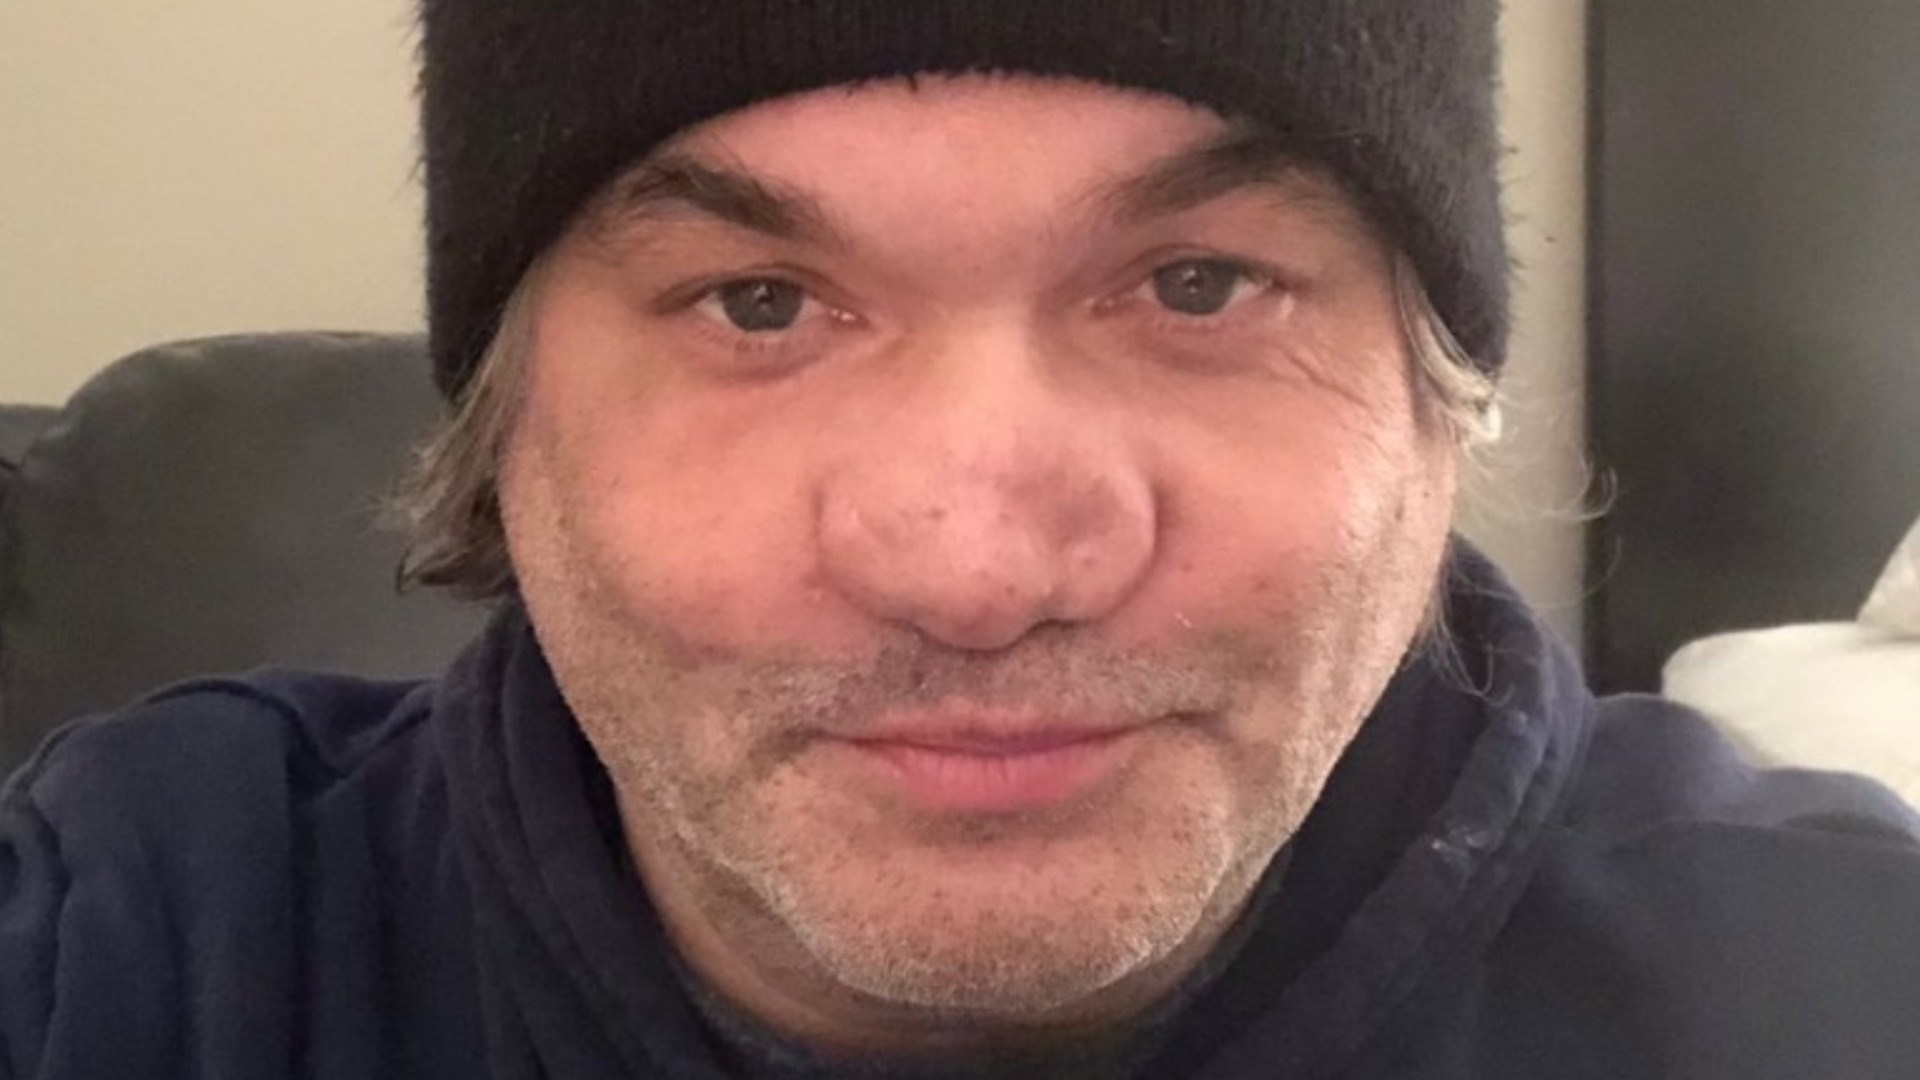 The Tragic Life Of Artie Lange